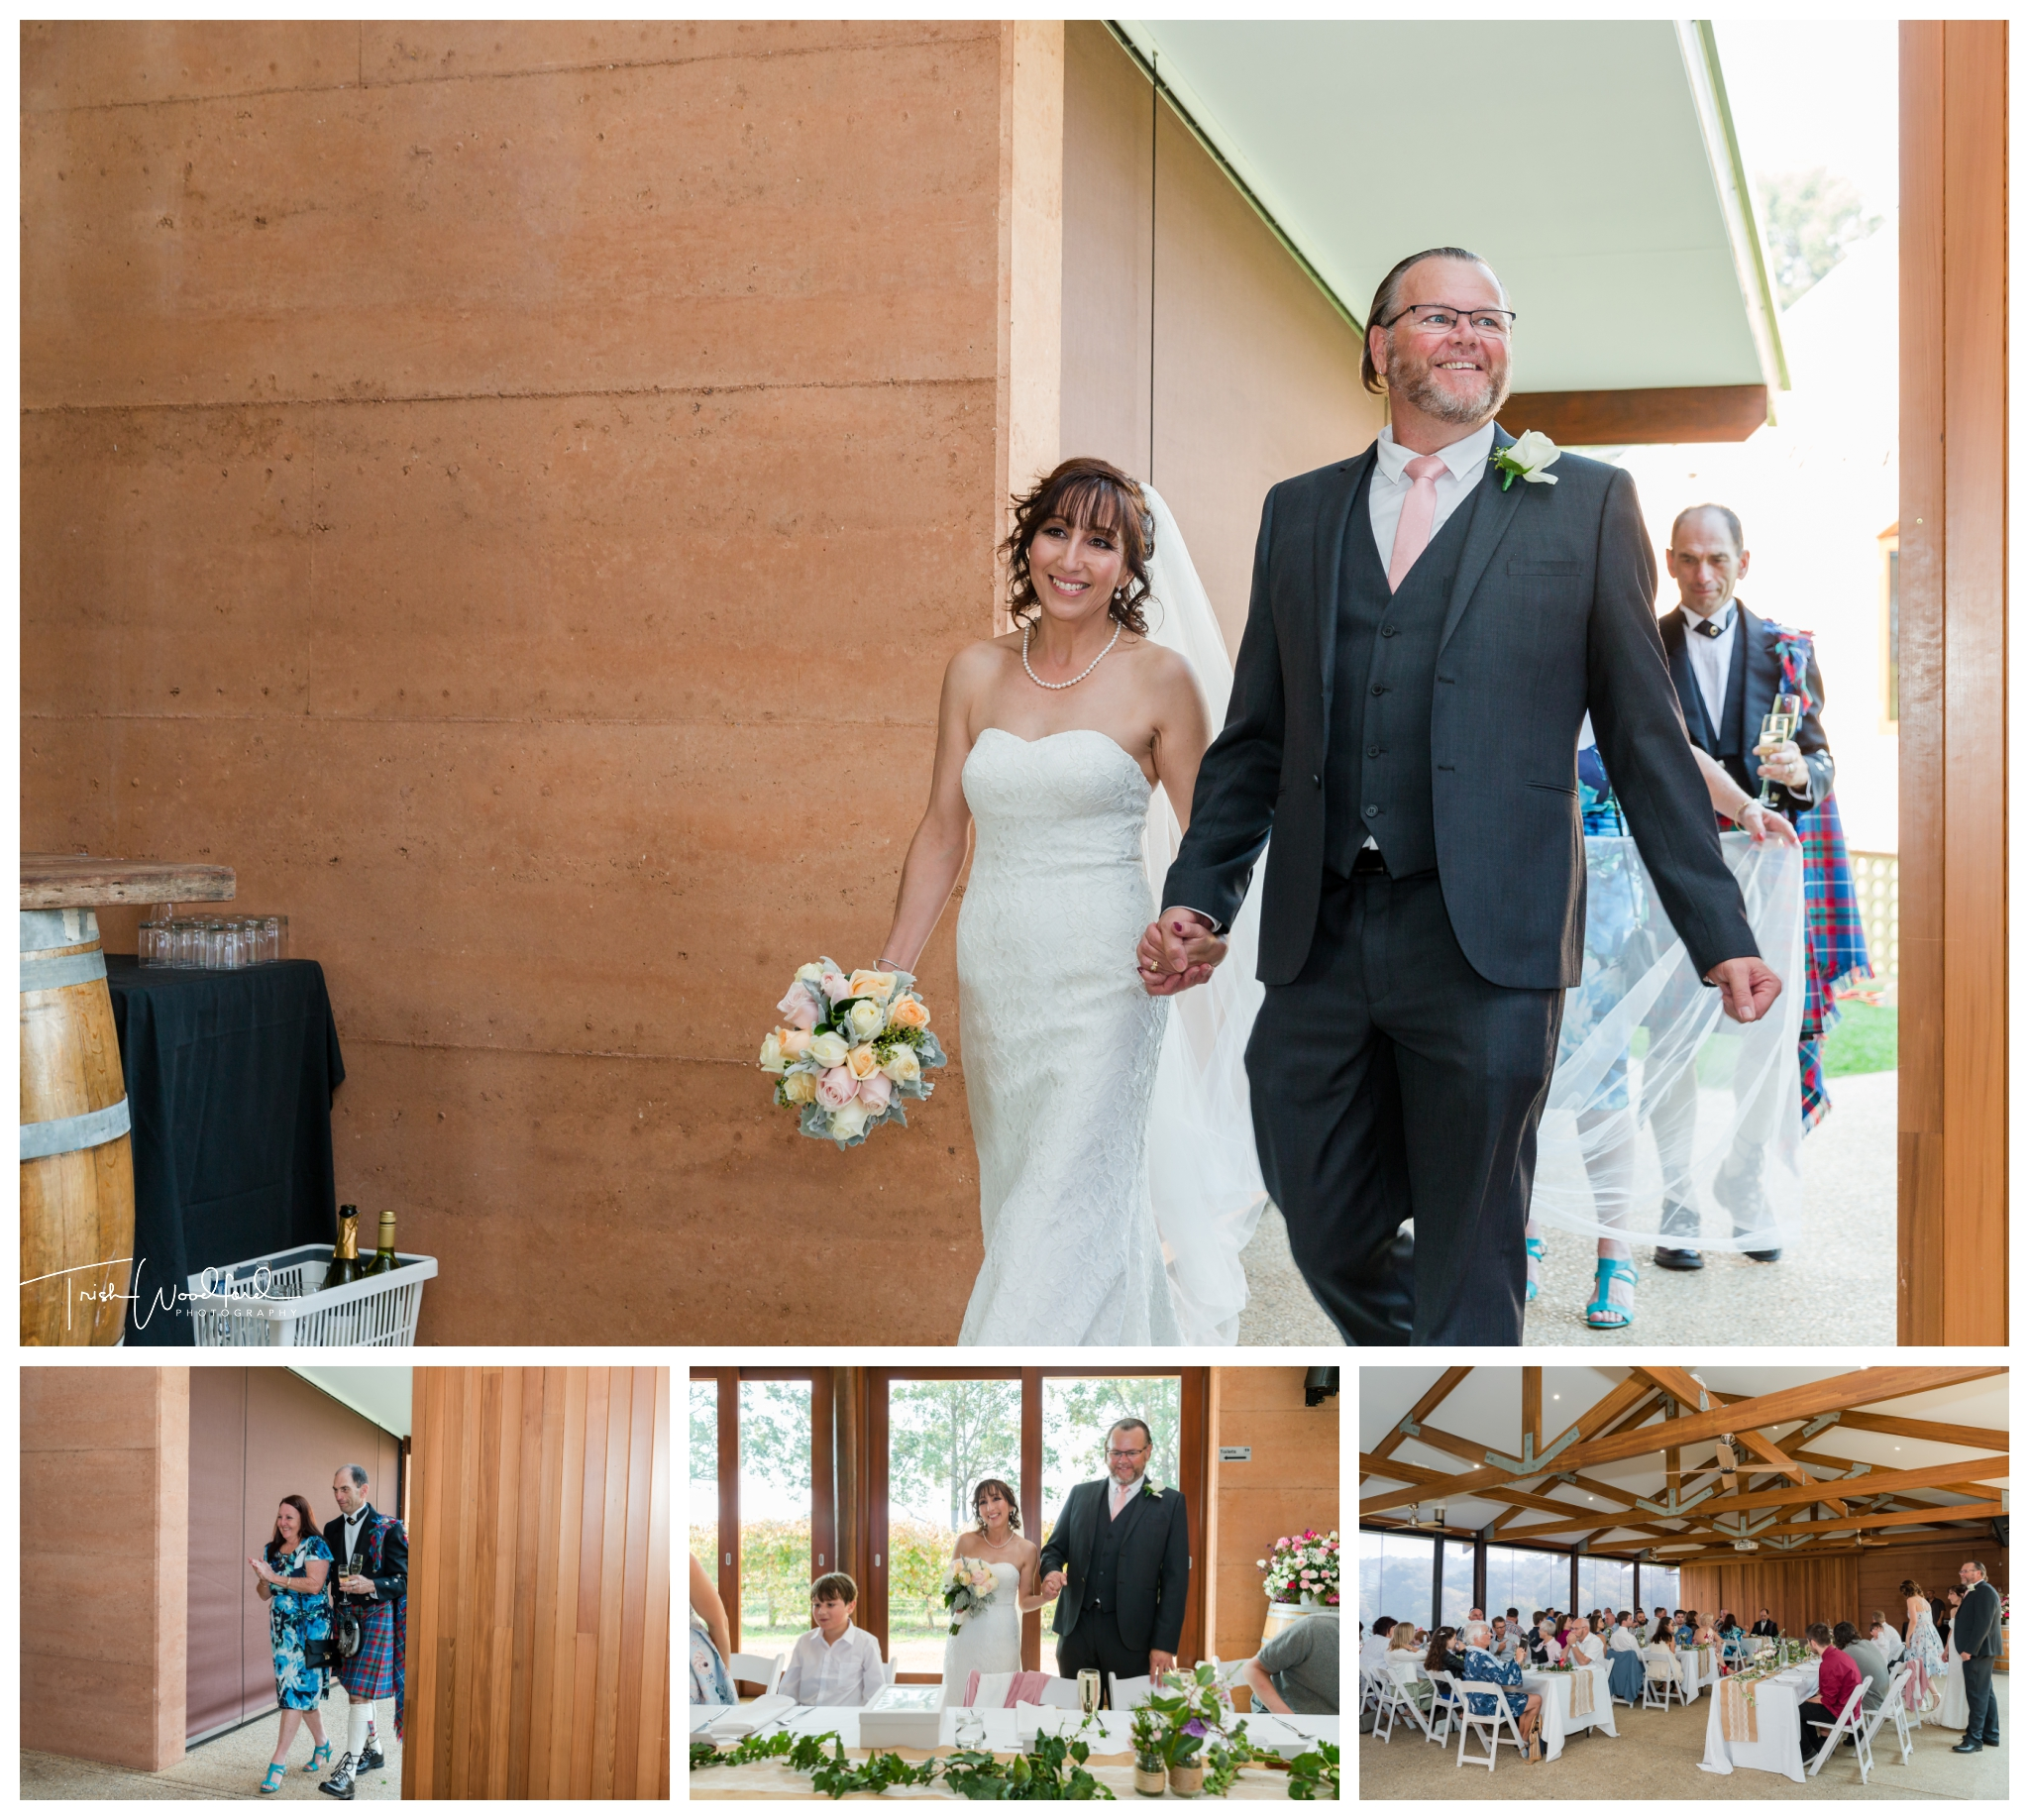 St Aidans Winery Wedding Reception